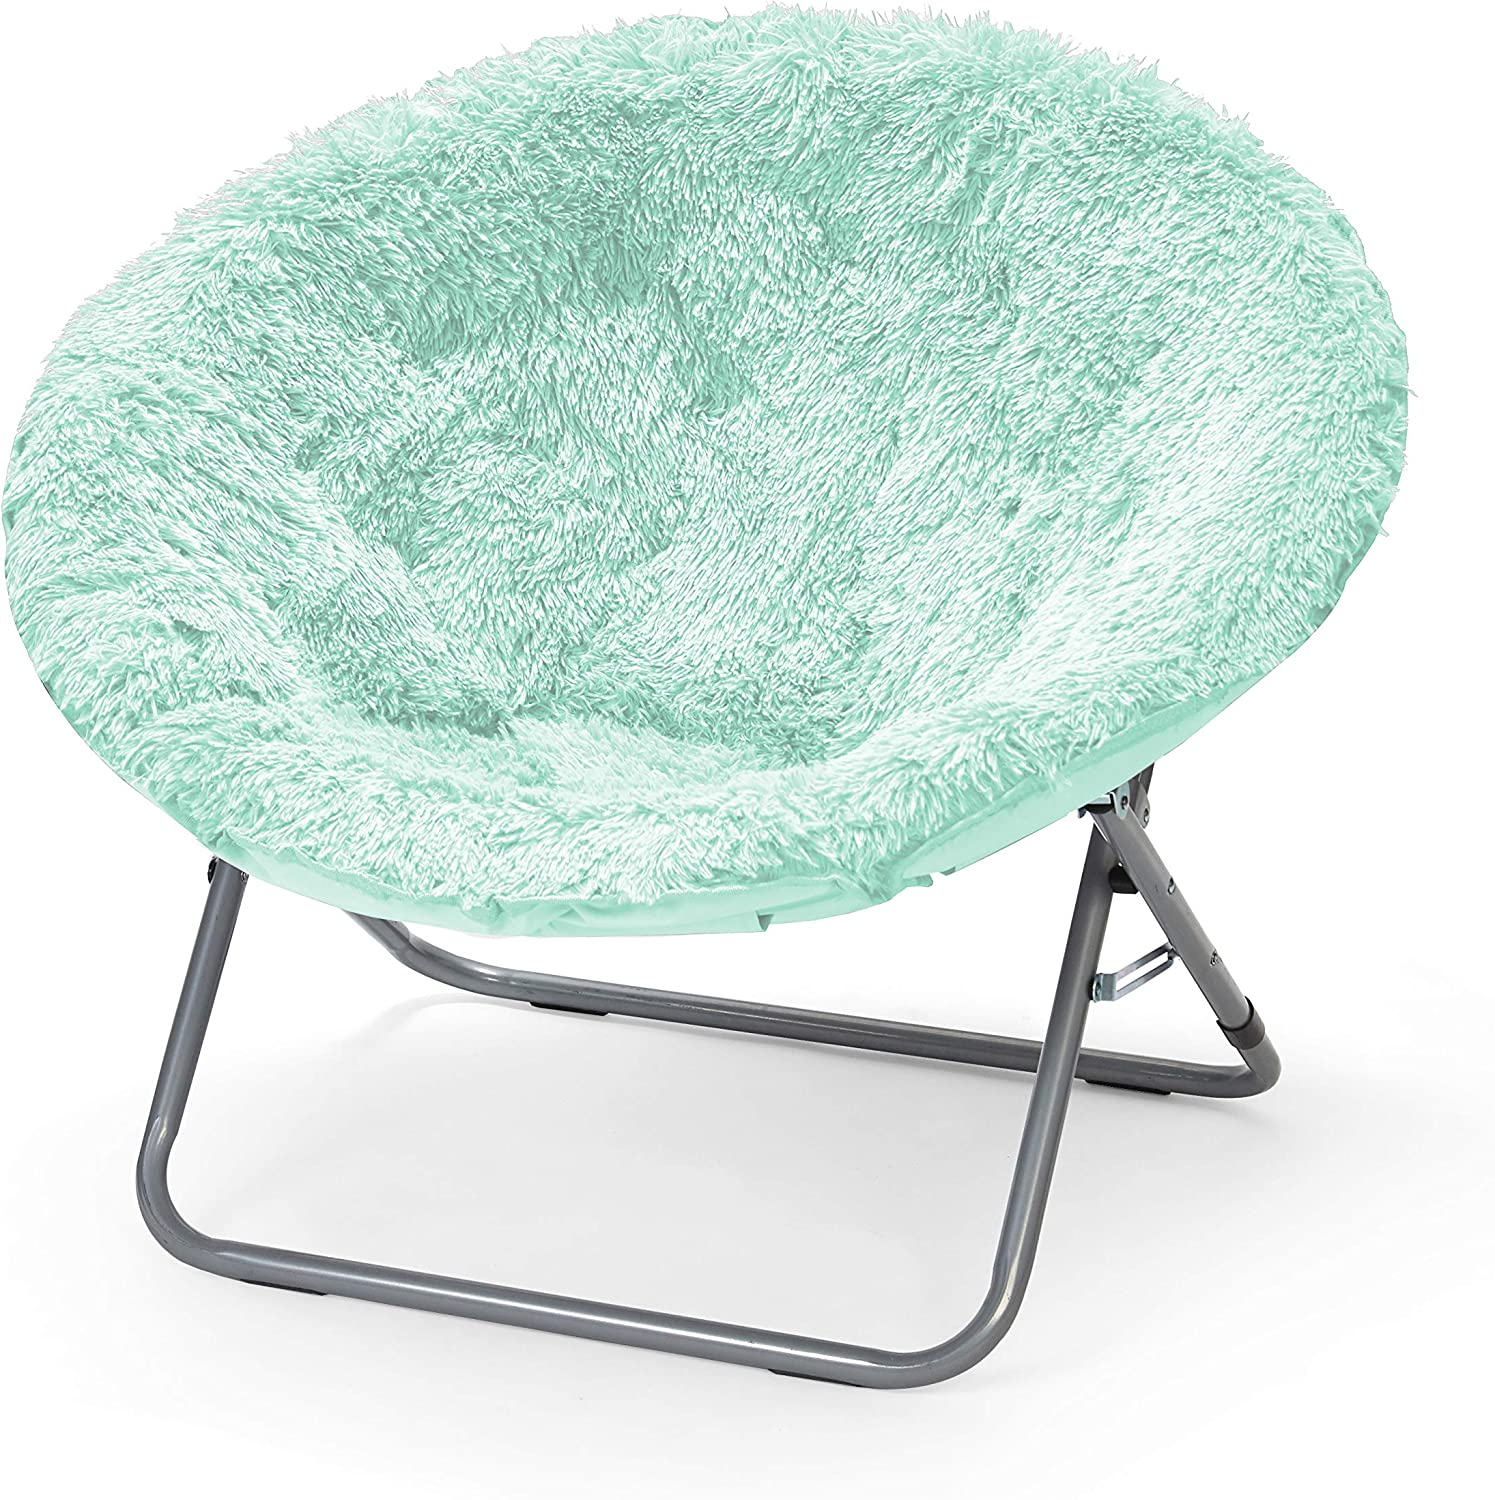 Urban Shop WK657555 Oversized Mongolian Saucer Chair, Mint